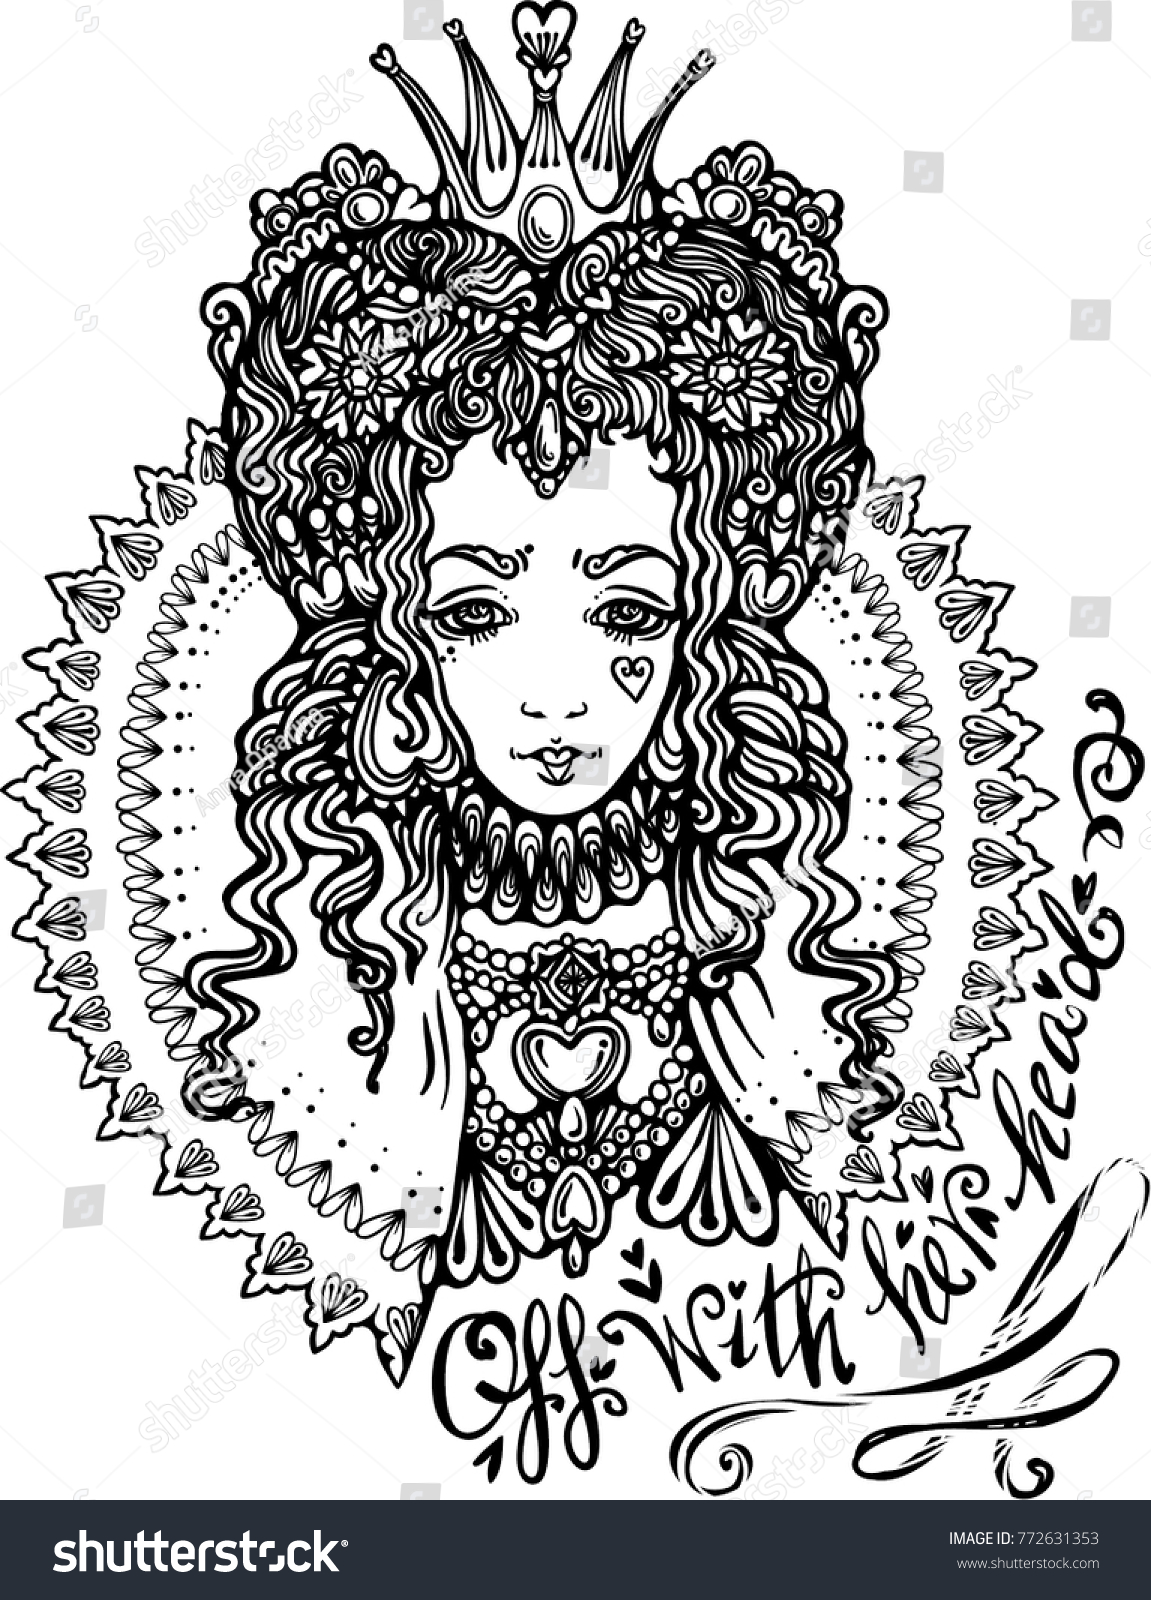 Red Queen Hearts Coloring Book Vector Stock Photo (Photo, Vector ...